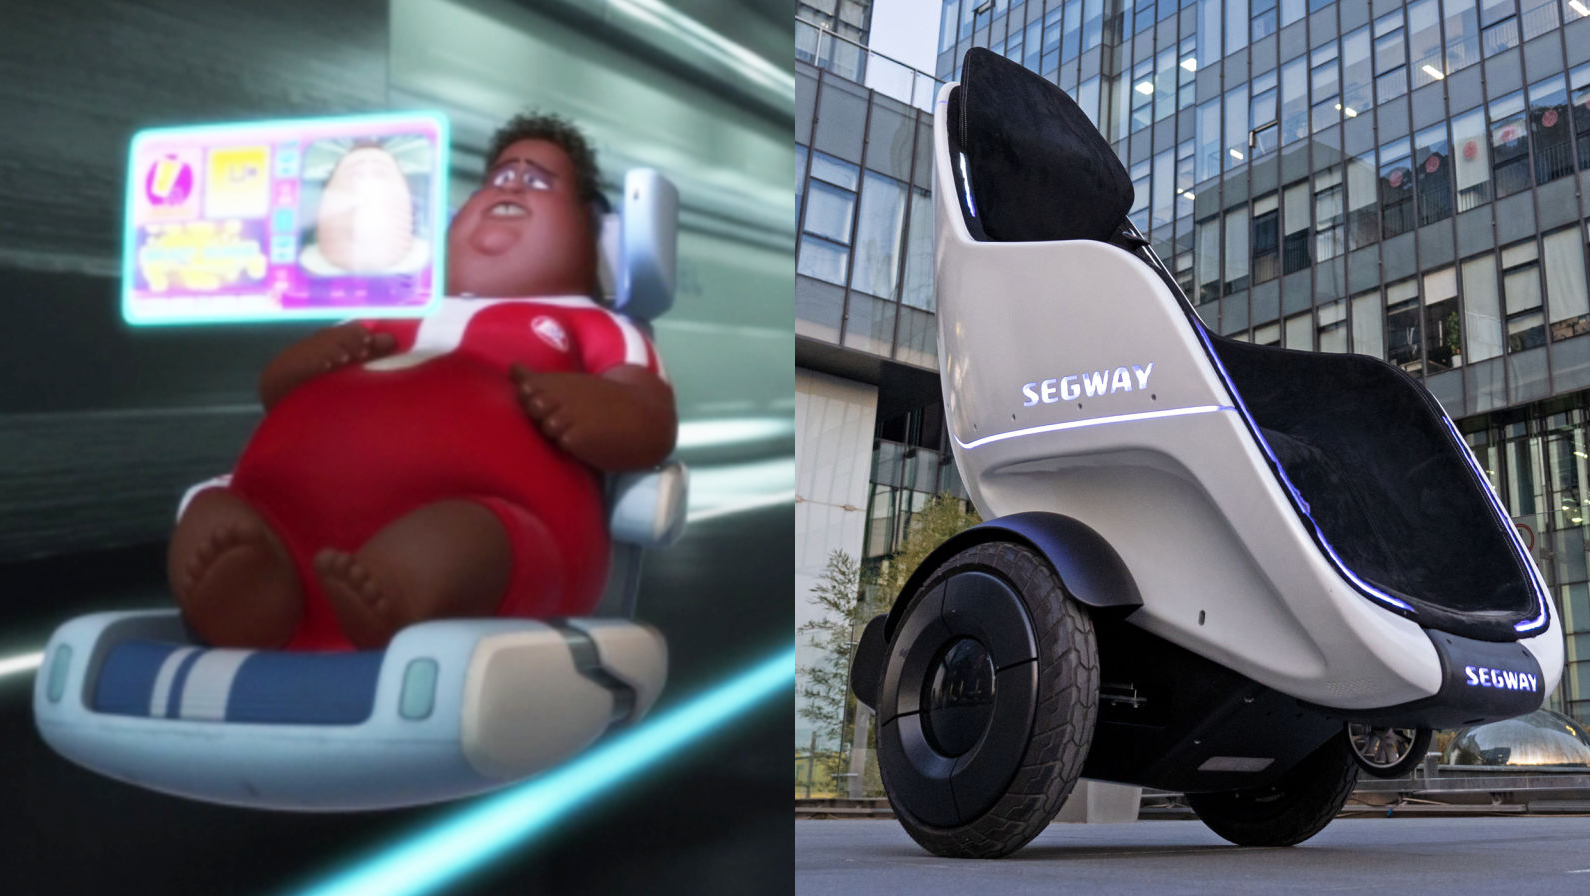 Segway announces new stroller for adults. Where have I seen this before?